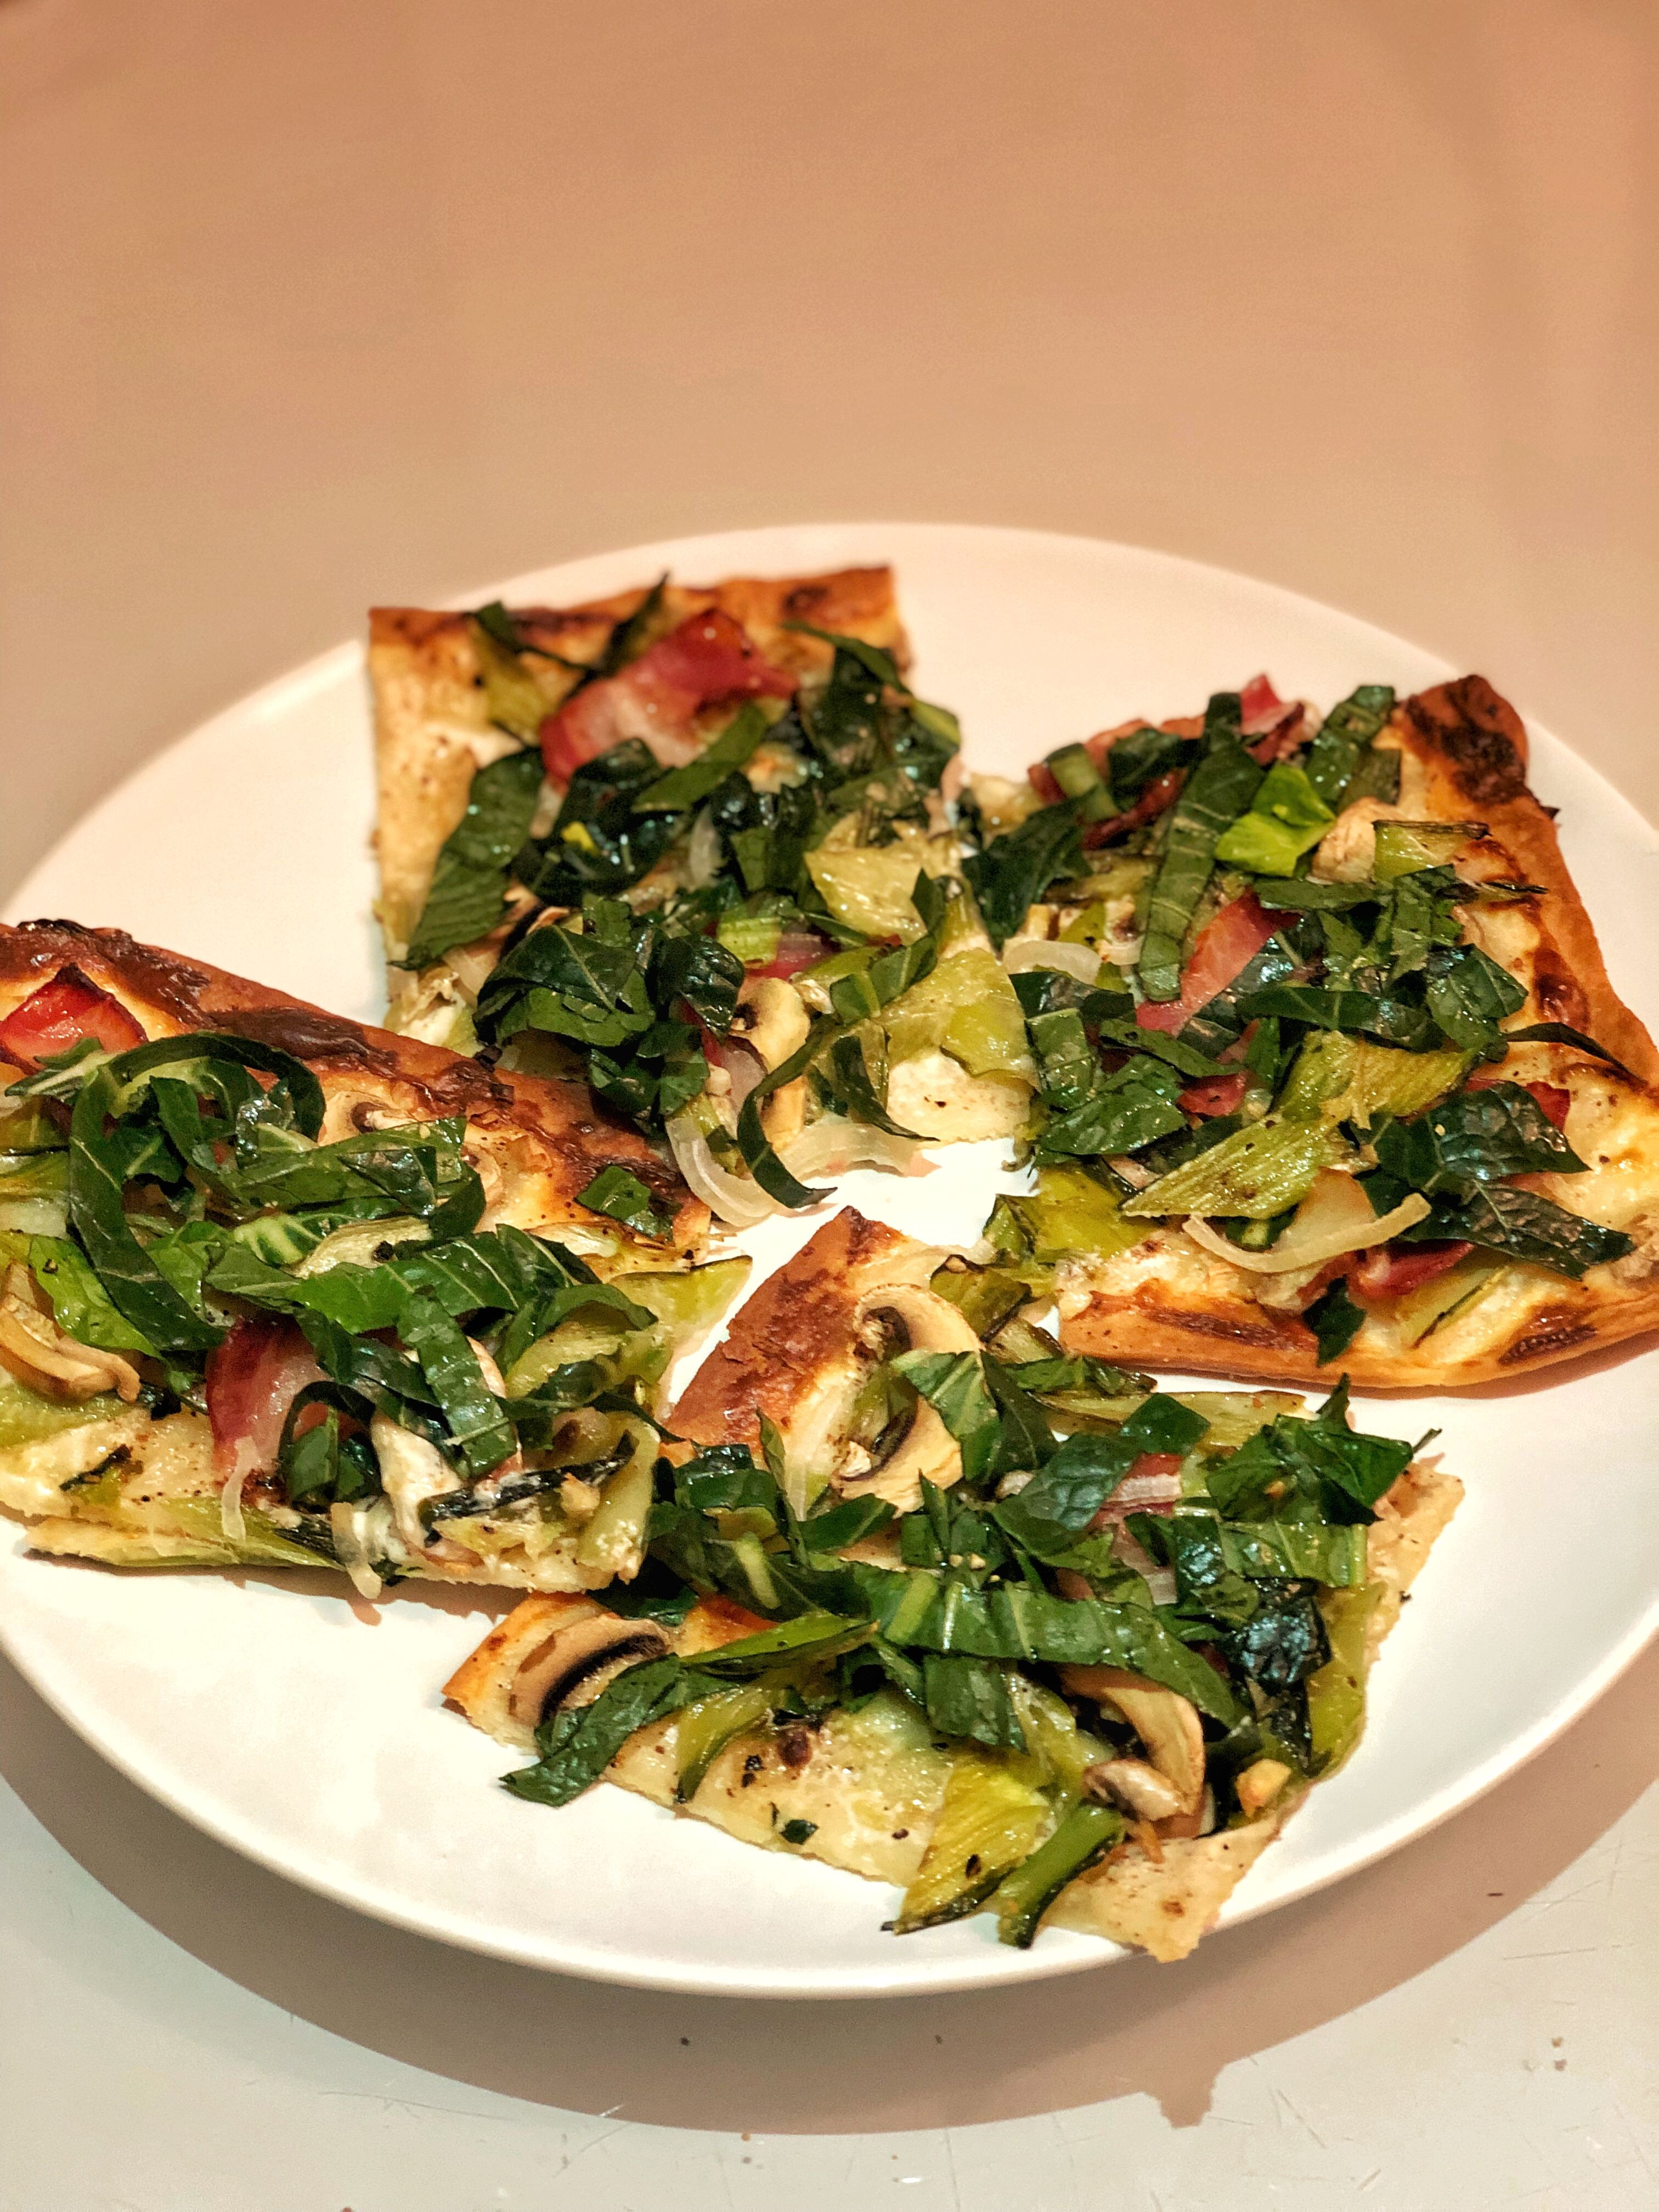 Tarte Flambee With Bok Choi Bacon And Mushrooms